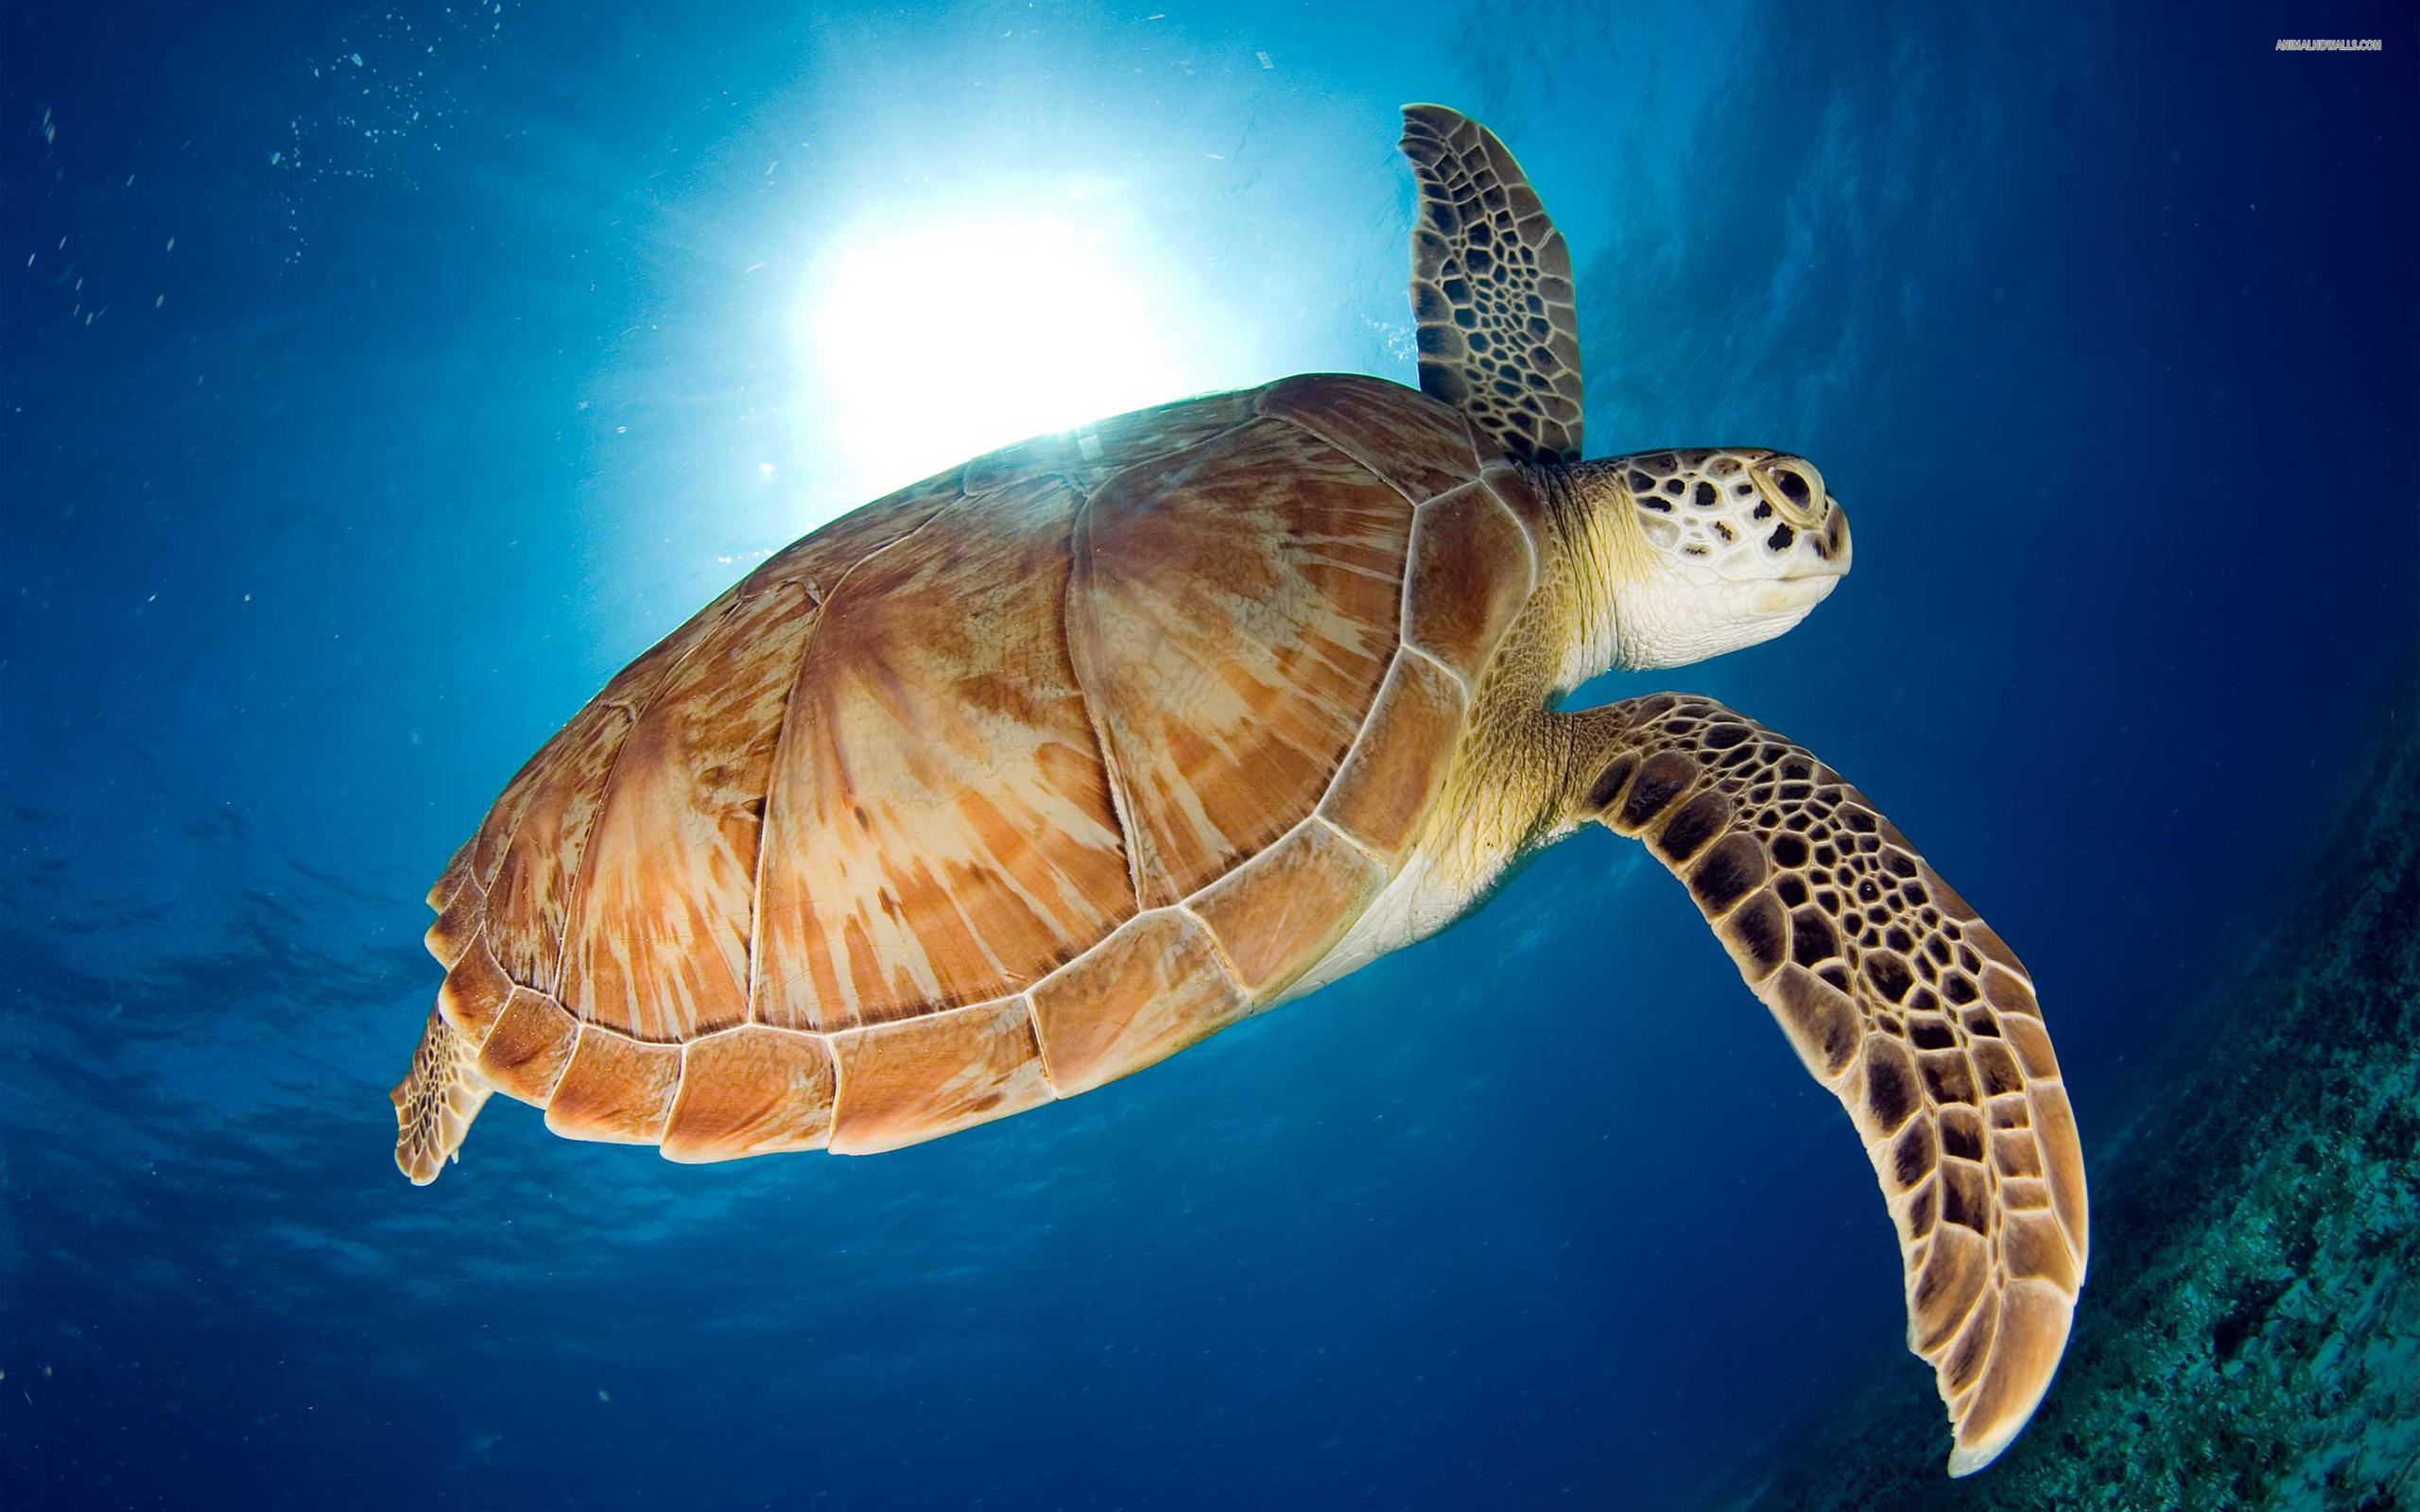 Sea turtle wallpaper 2560x1600